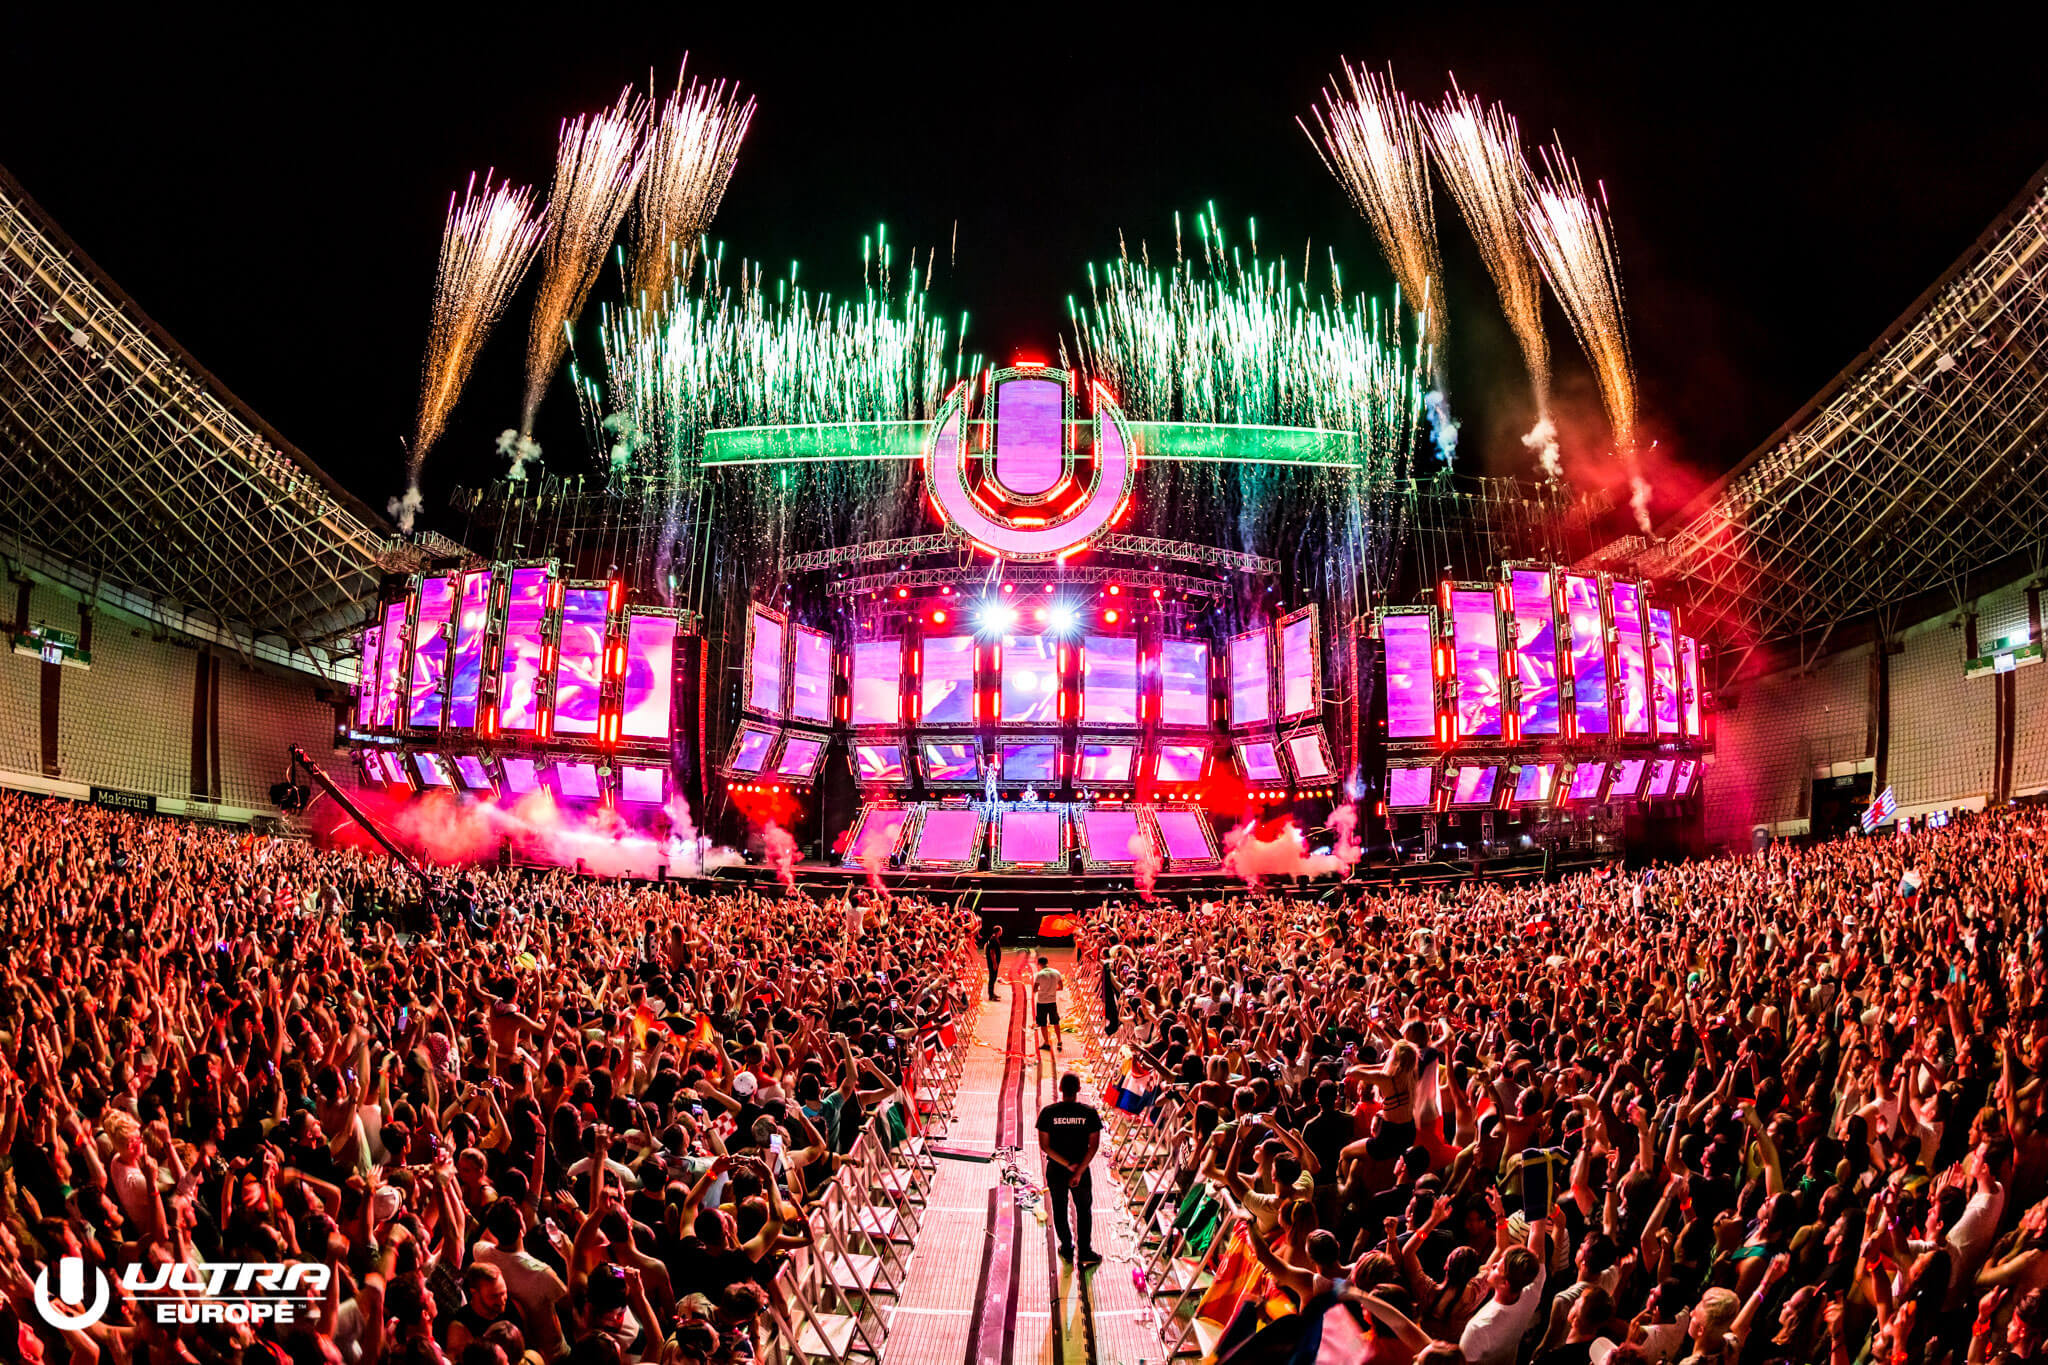 ULTRA Europe Celebrates Sixth Annual Edition